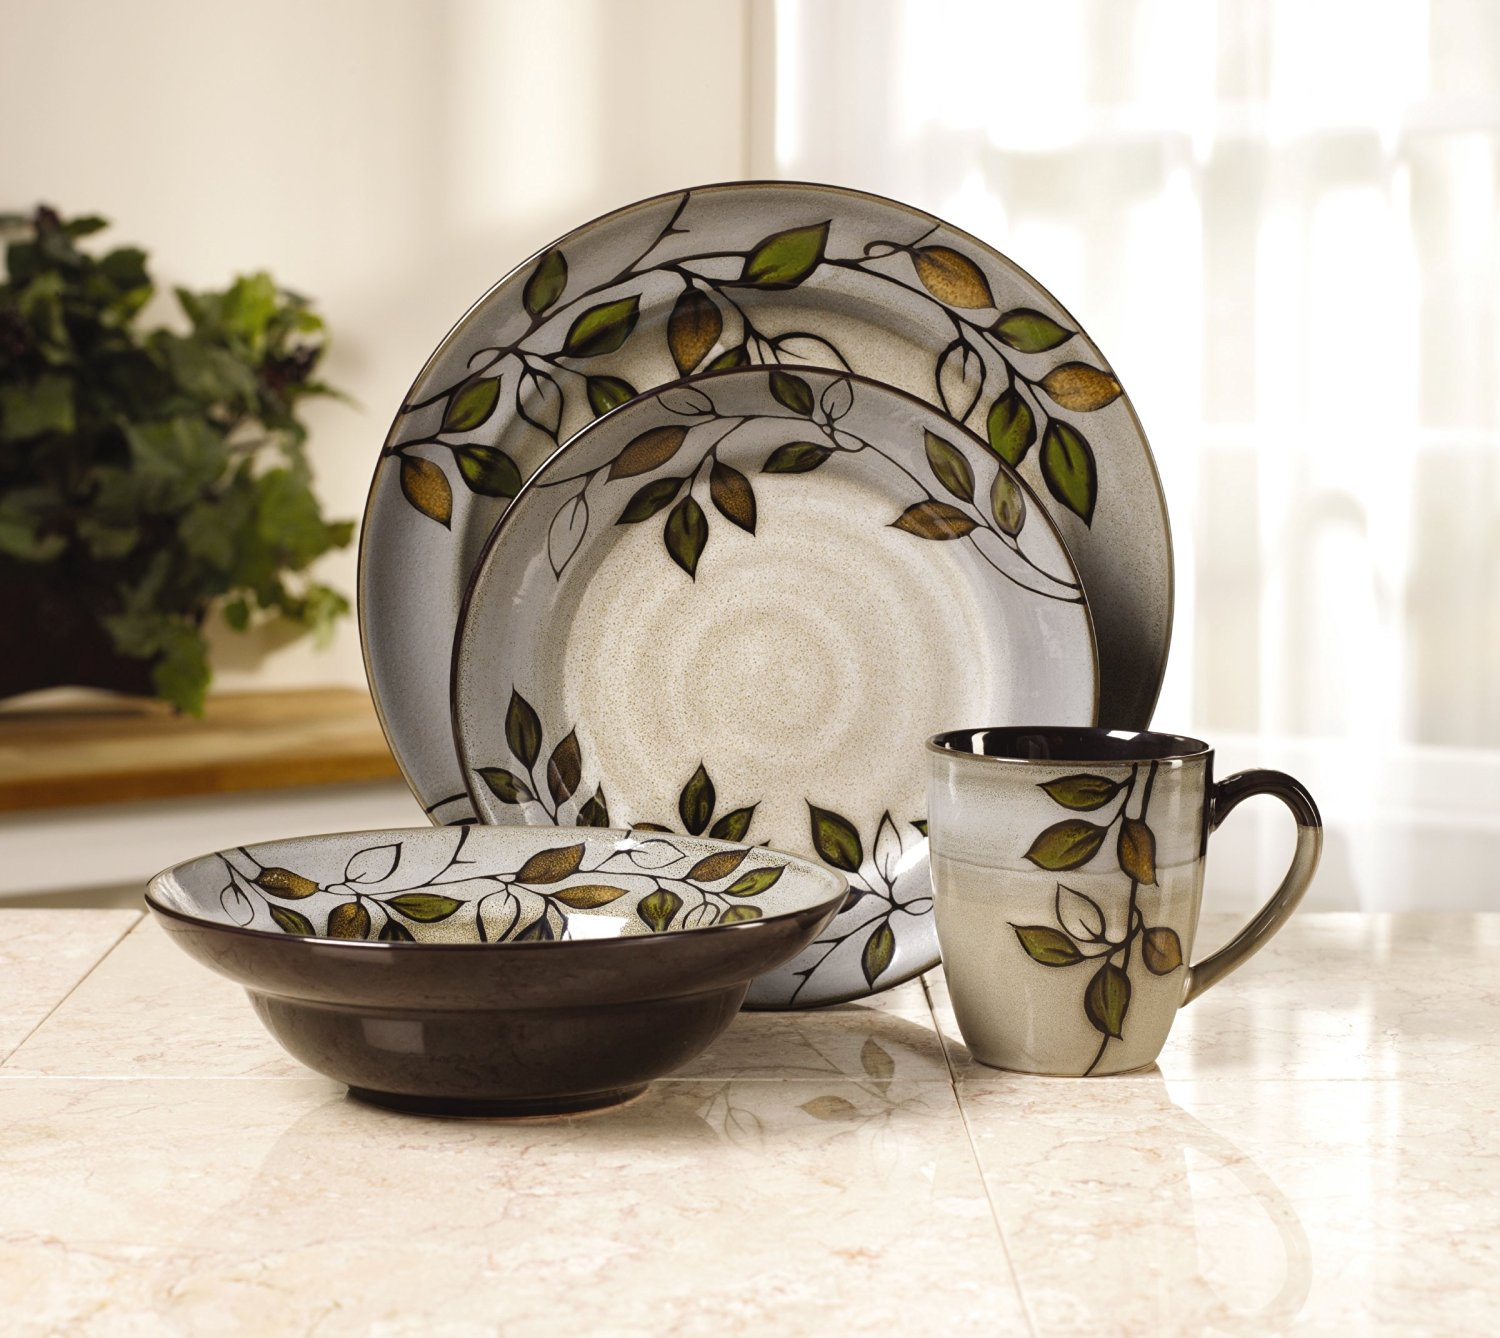 Pfaltzgraff Rustic Leaves Dinnerware Set for Fall